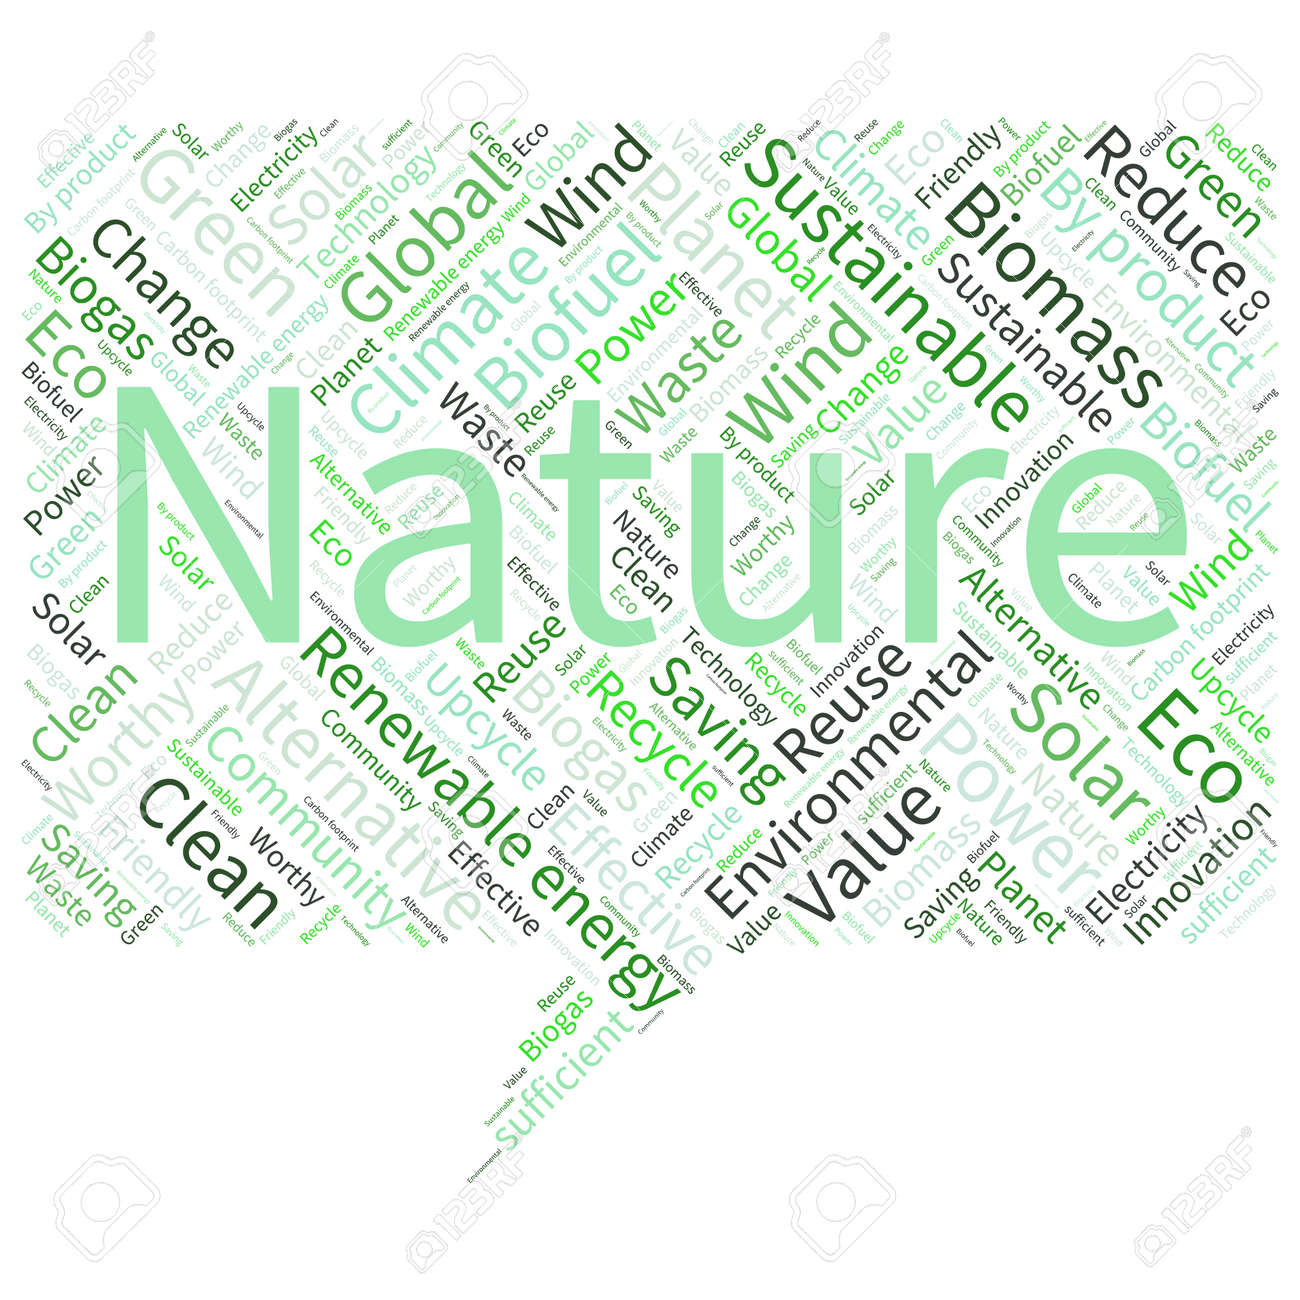 Poster design word - Ecology Earth Concept Word Collage Environmental Poster Design Template Stock Vector 40941737